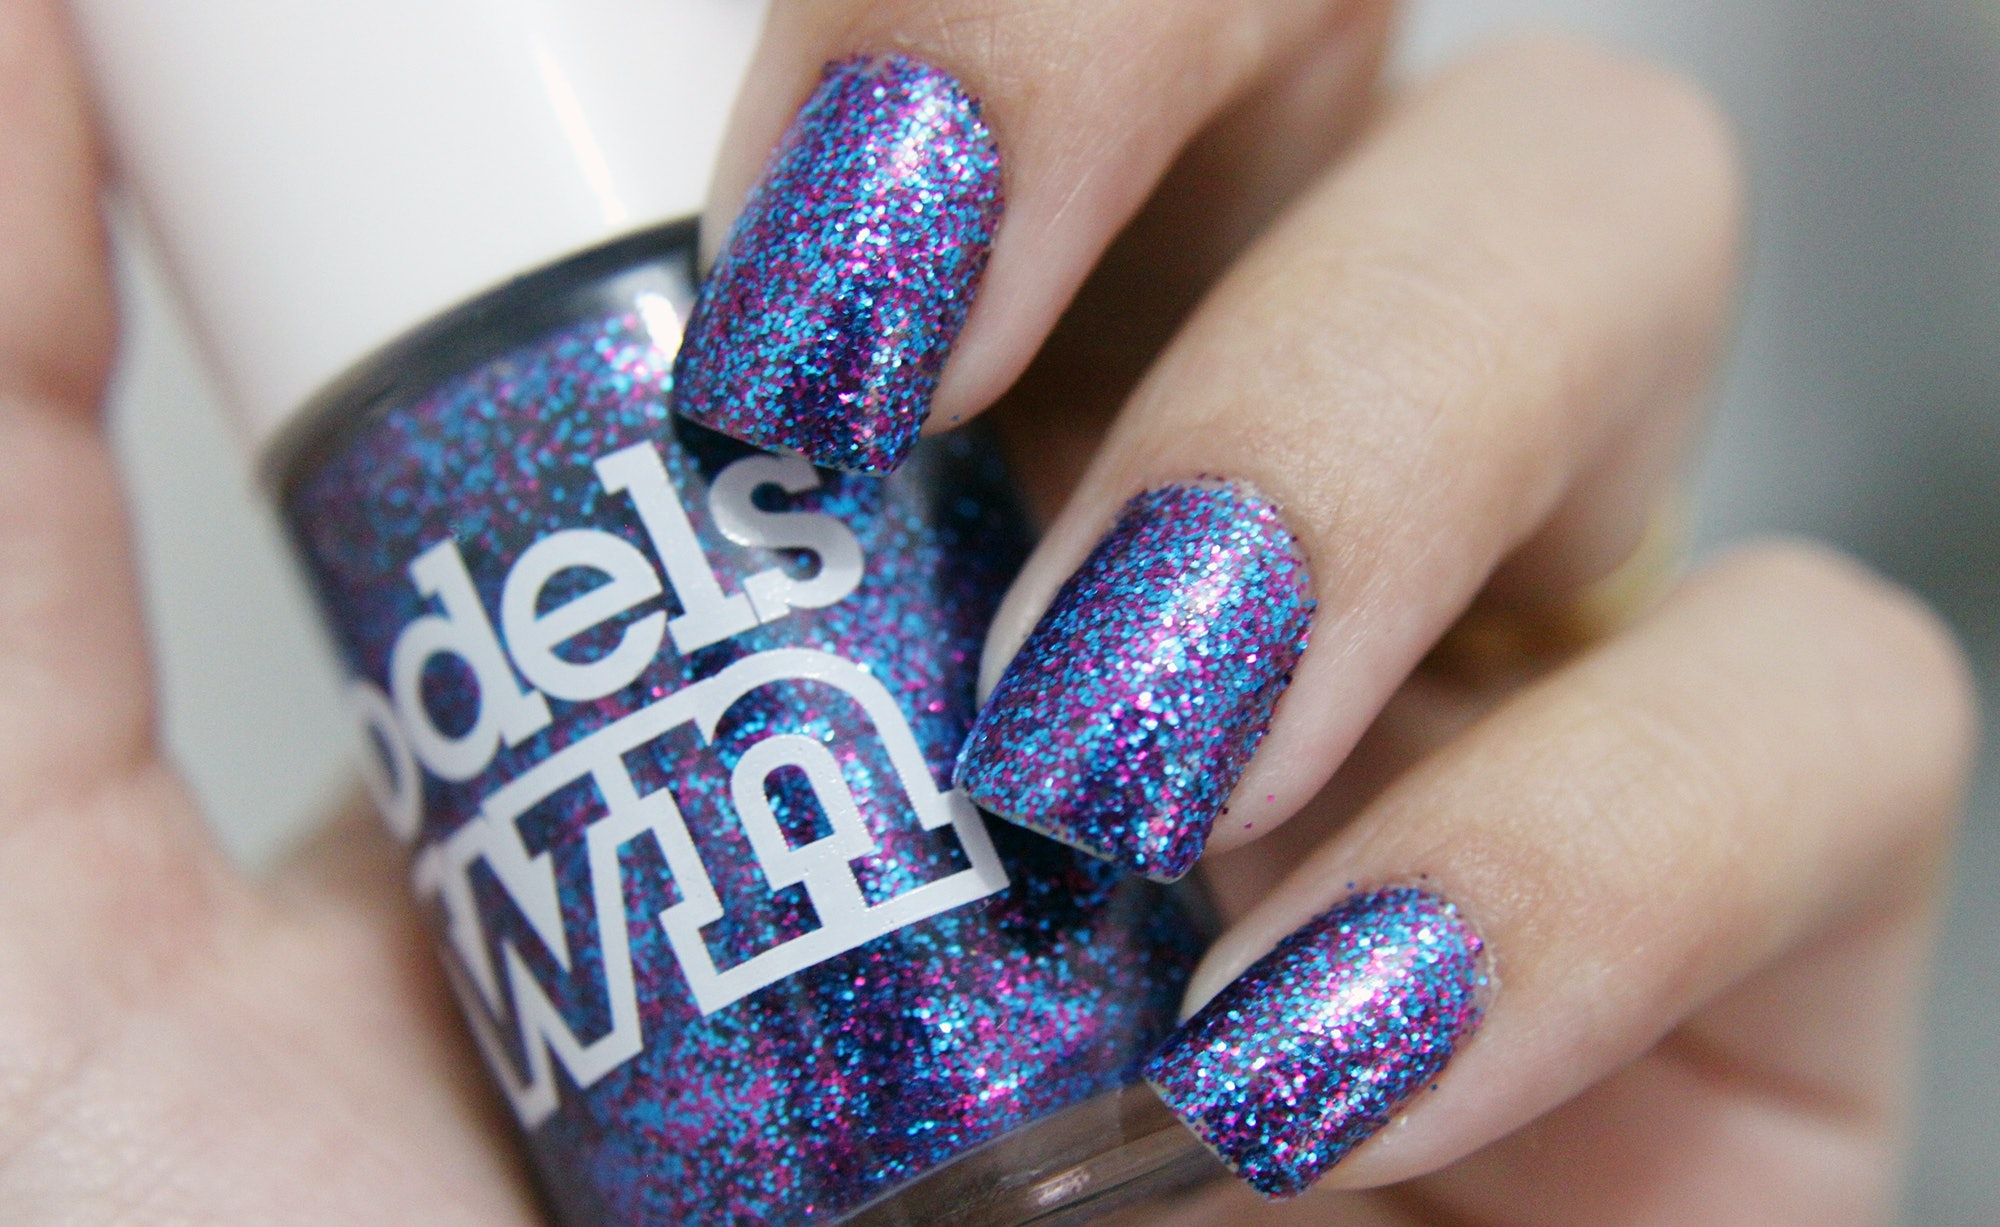 How To Remove Glitter Nail Polish That Just Wont Come Off